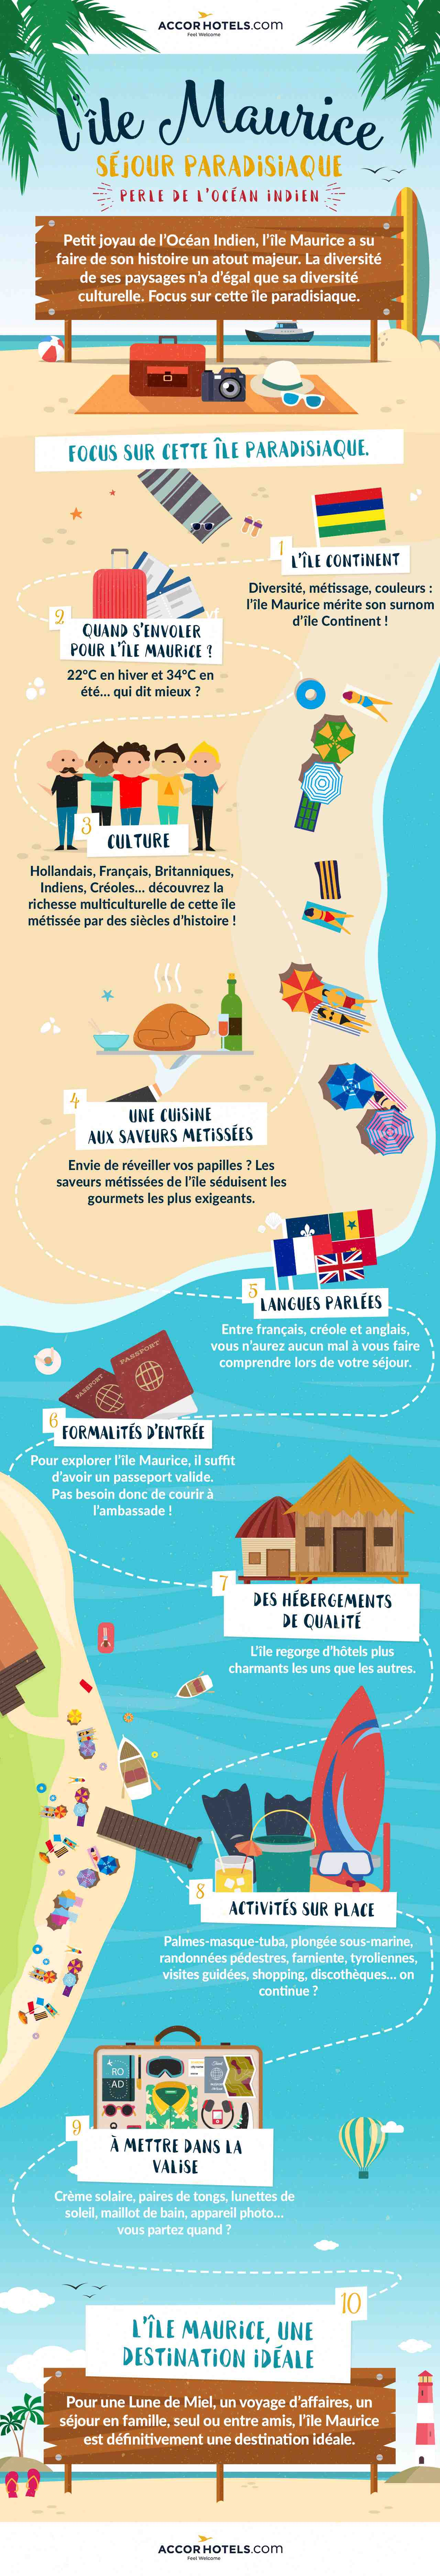 infographie maurice